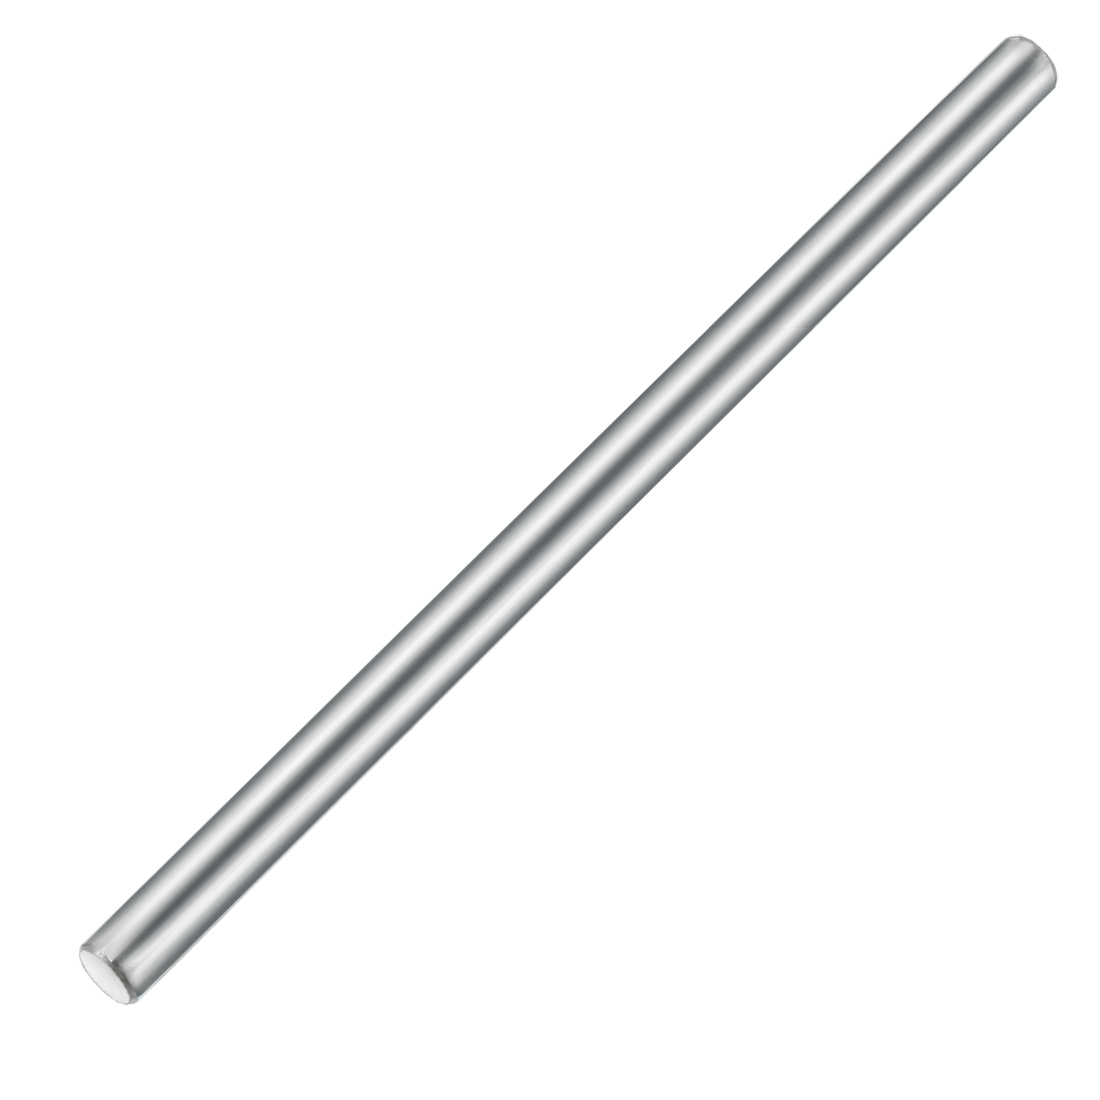 Stainless Steel Round Shaft Rod Axle 3mm x 80mm for RC Toy Car